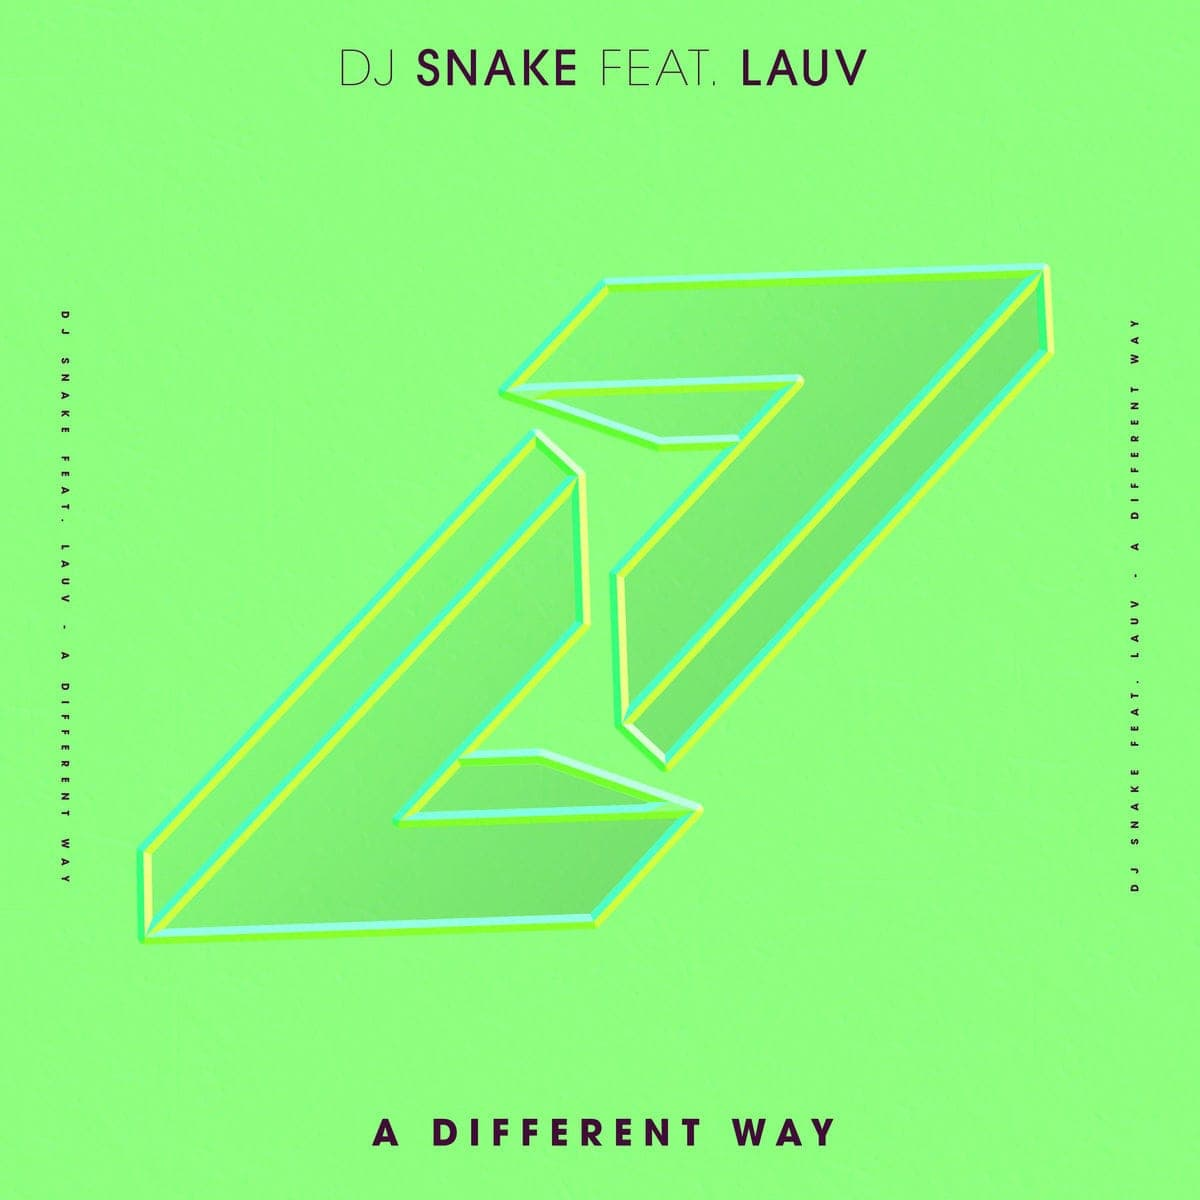 A Different Way - DJ Snake